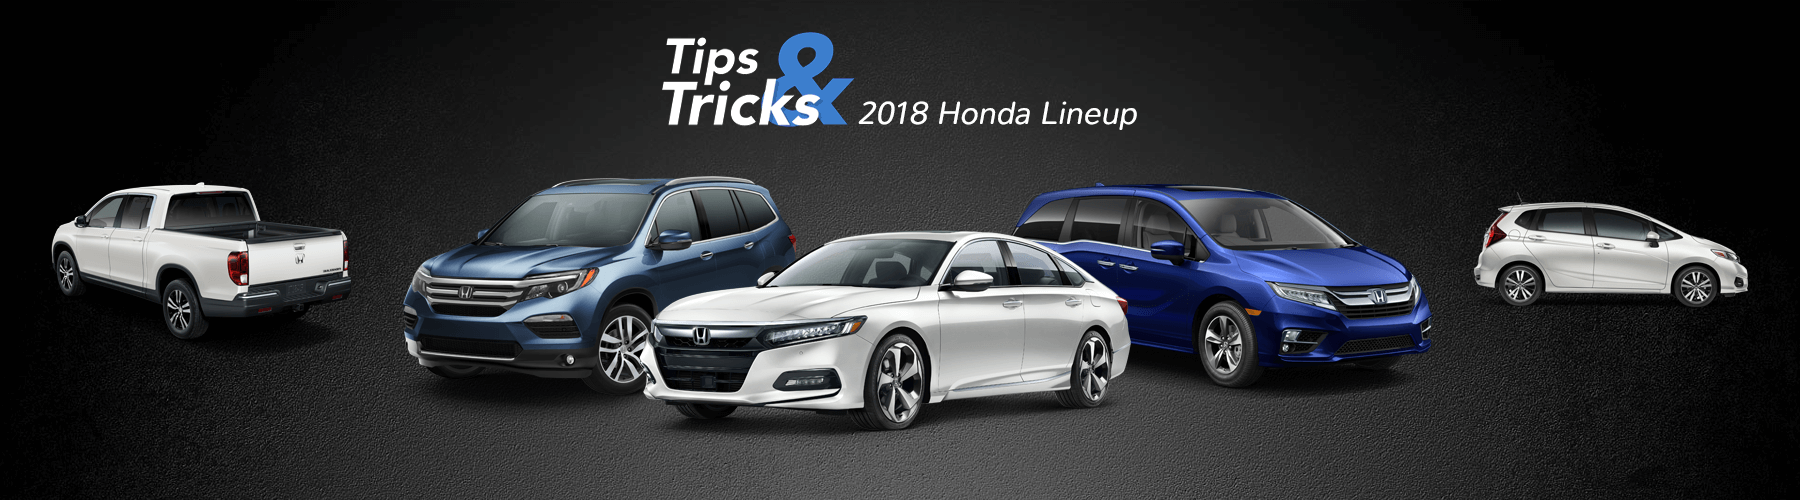 Honda Tips and Tricks Banner